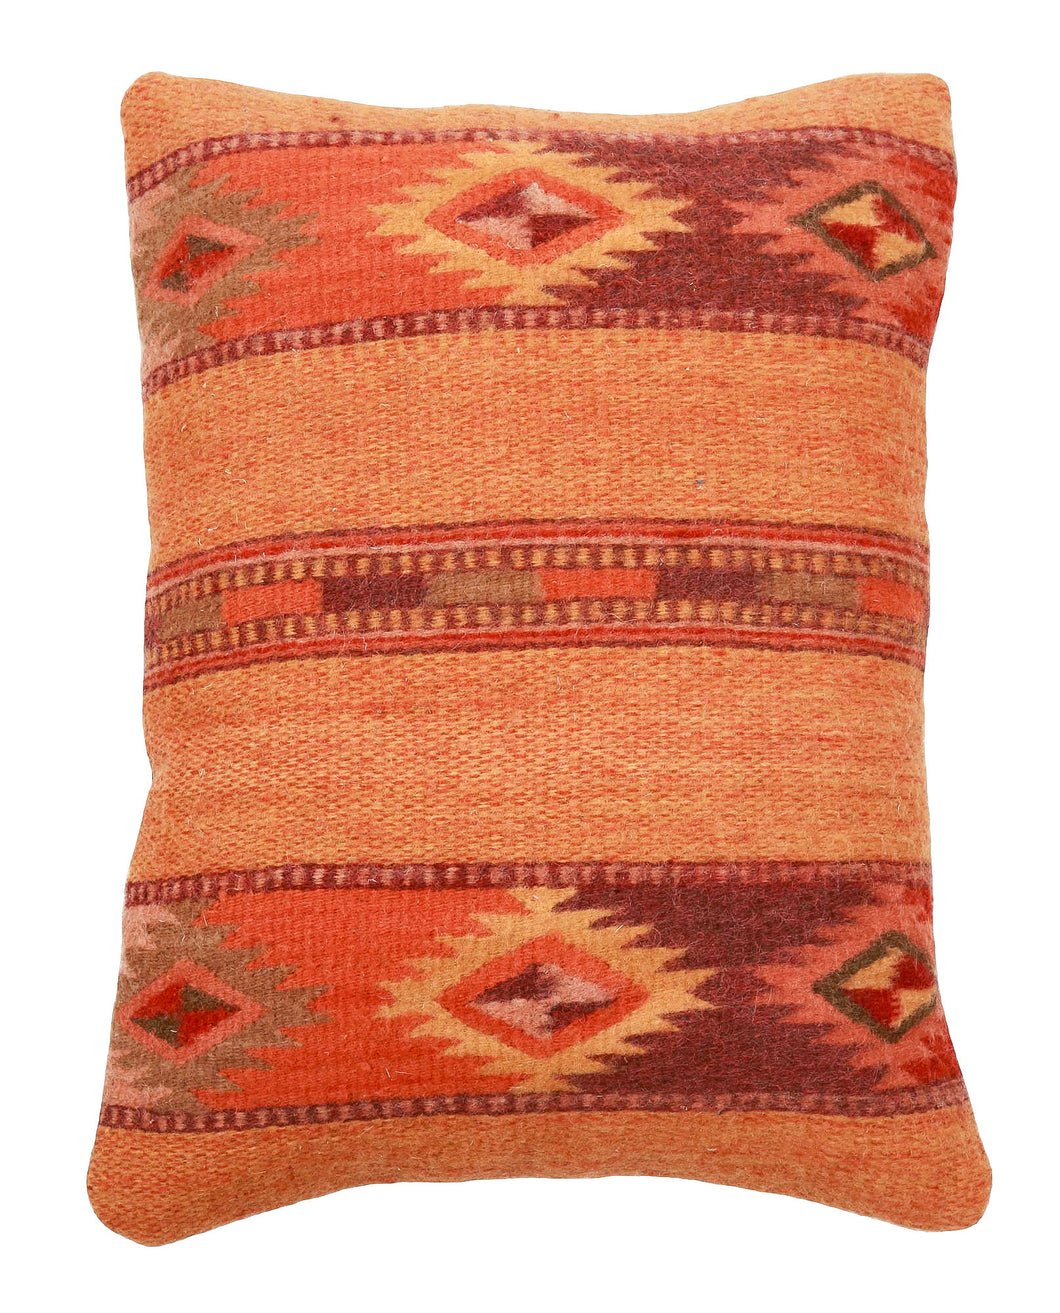 Handwoven Zapotec Indian Pillow - Autumn Medallion Wool Oaxacan Textile